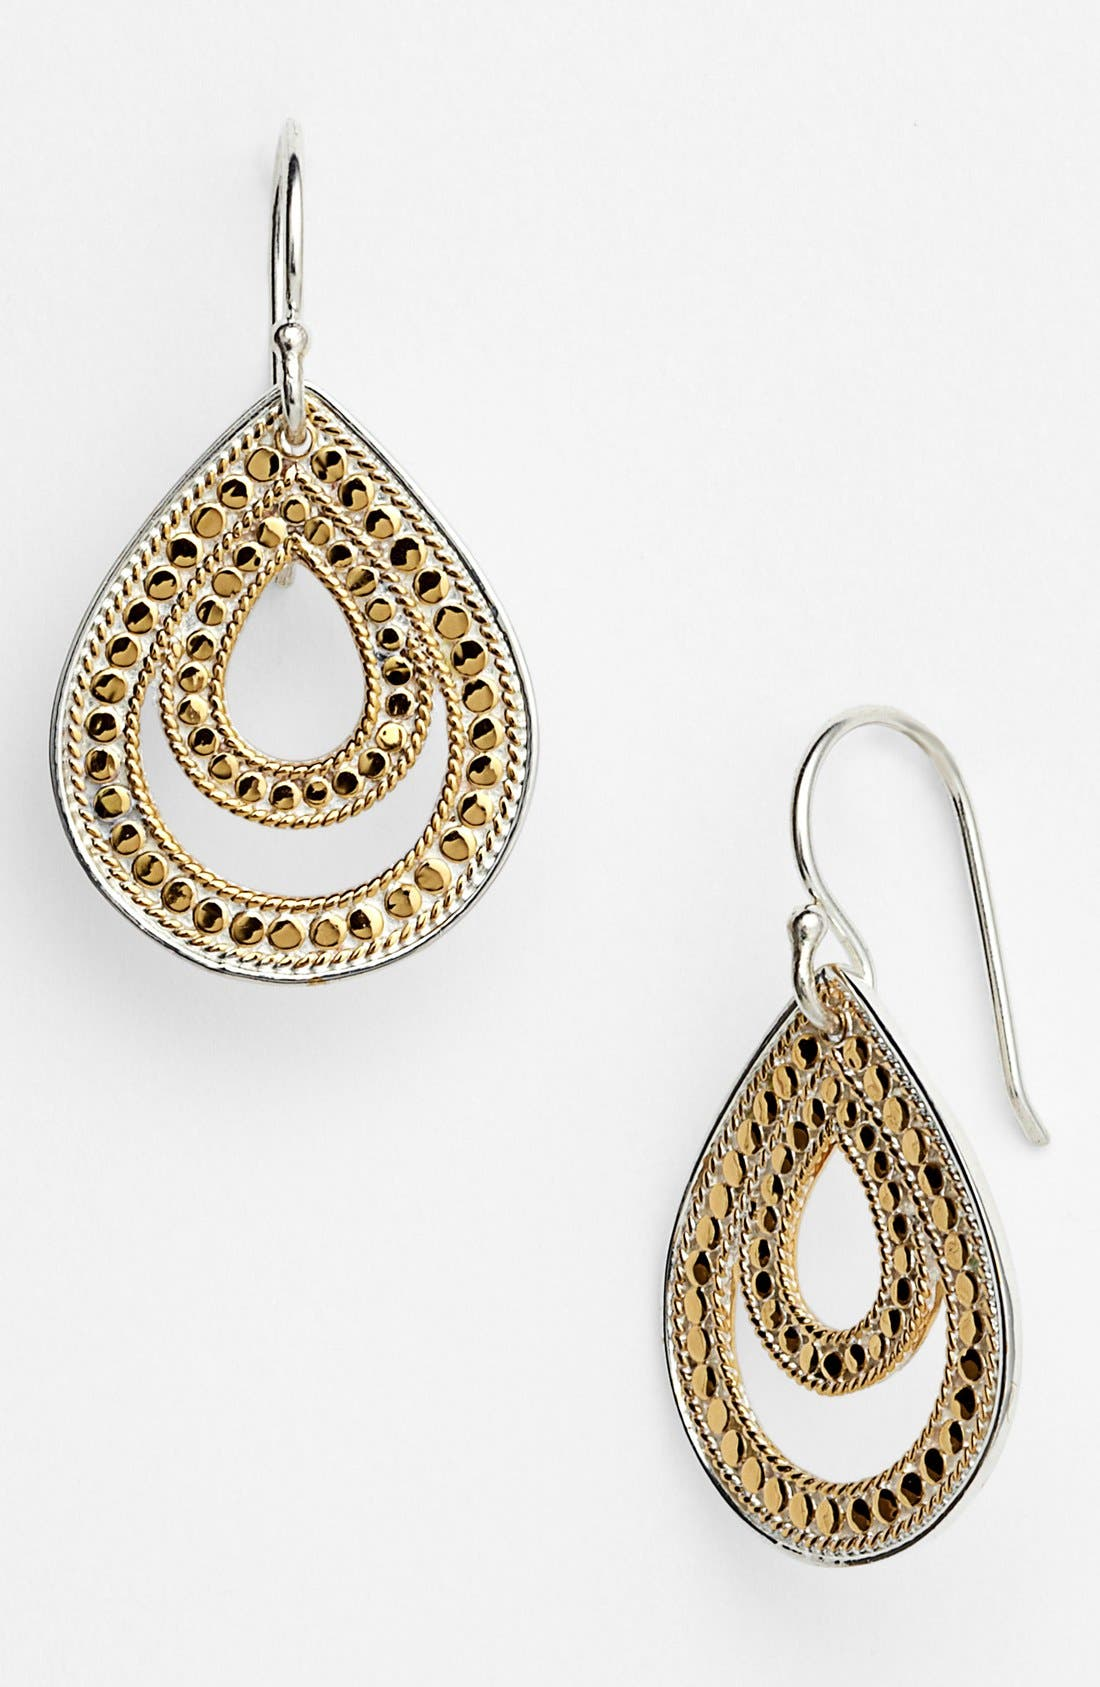 Alternate Image 1 Selected - Anna Beck 'Gili' Open Teardrop Earrings